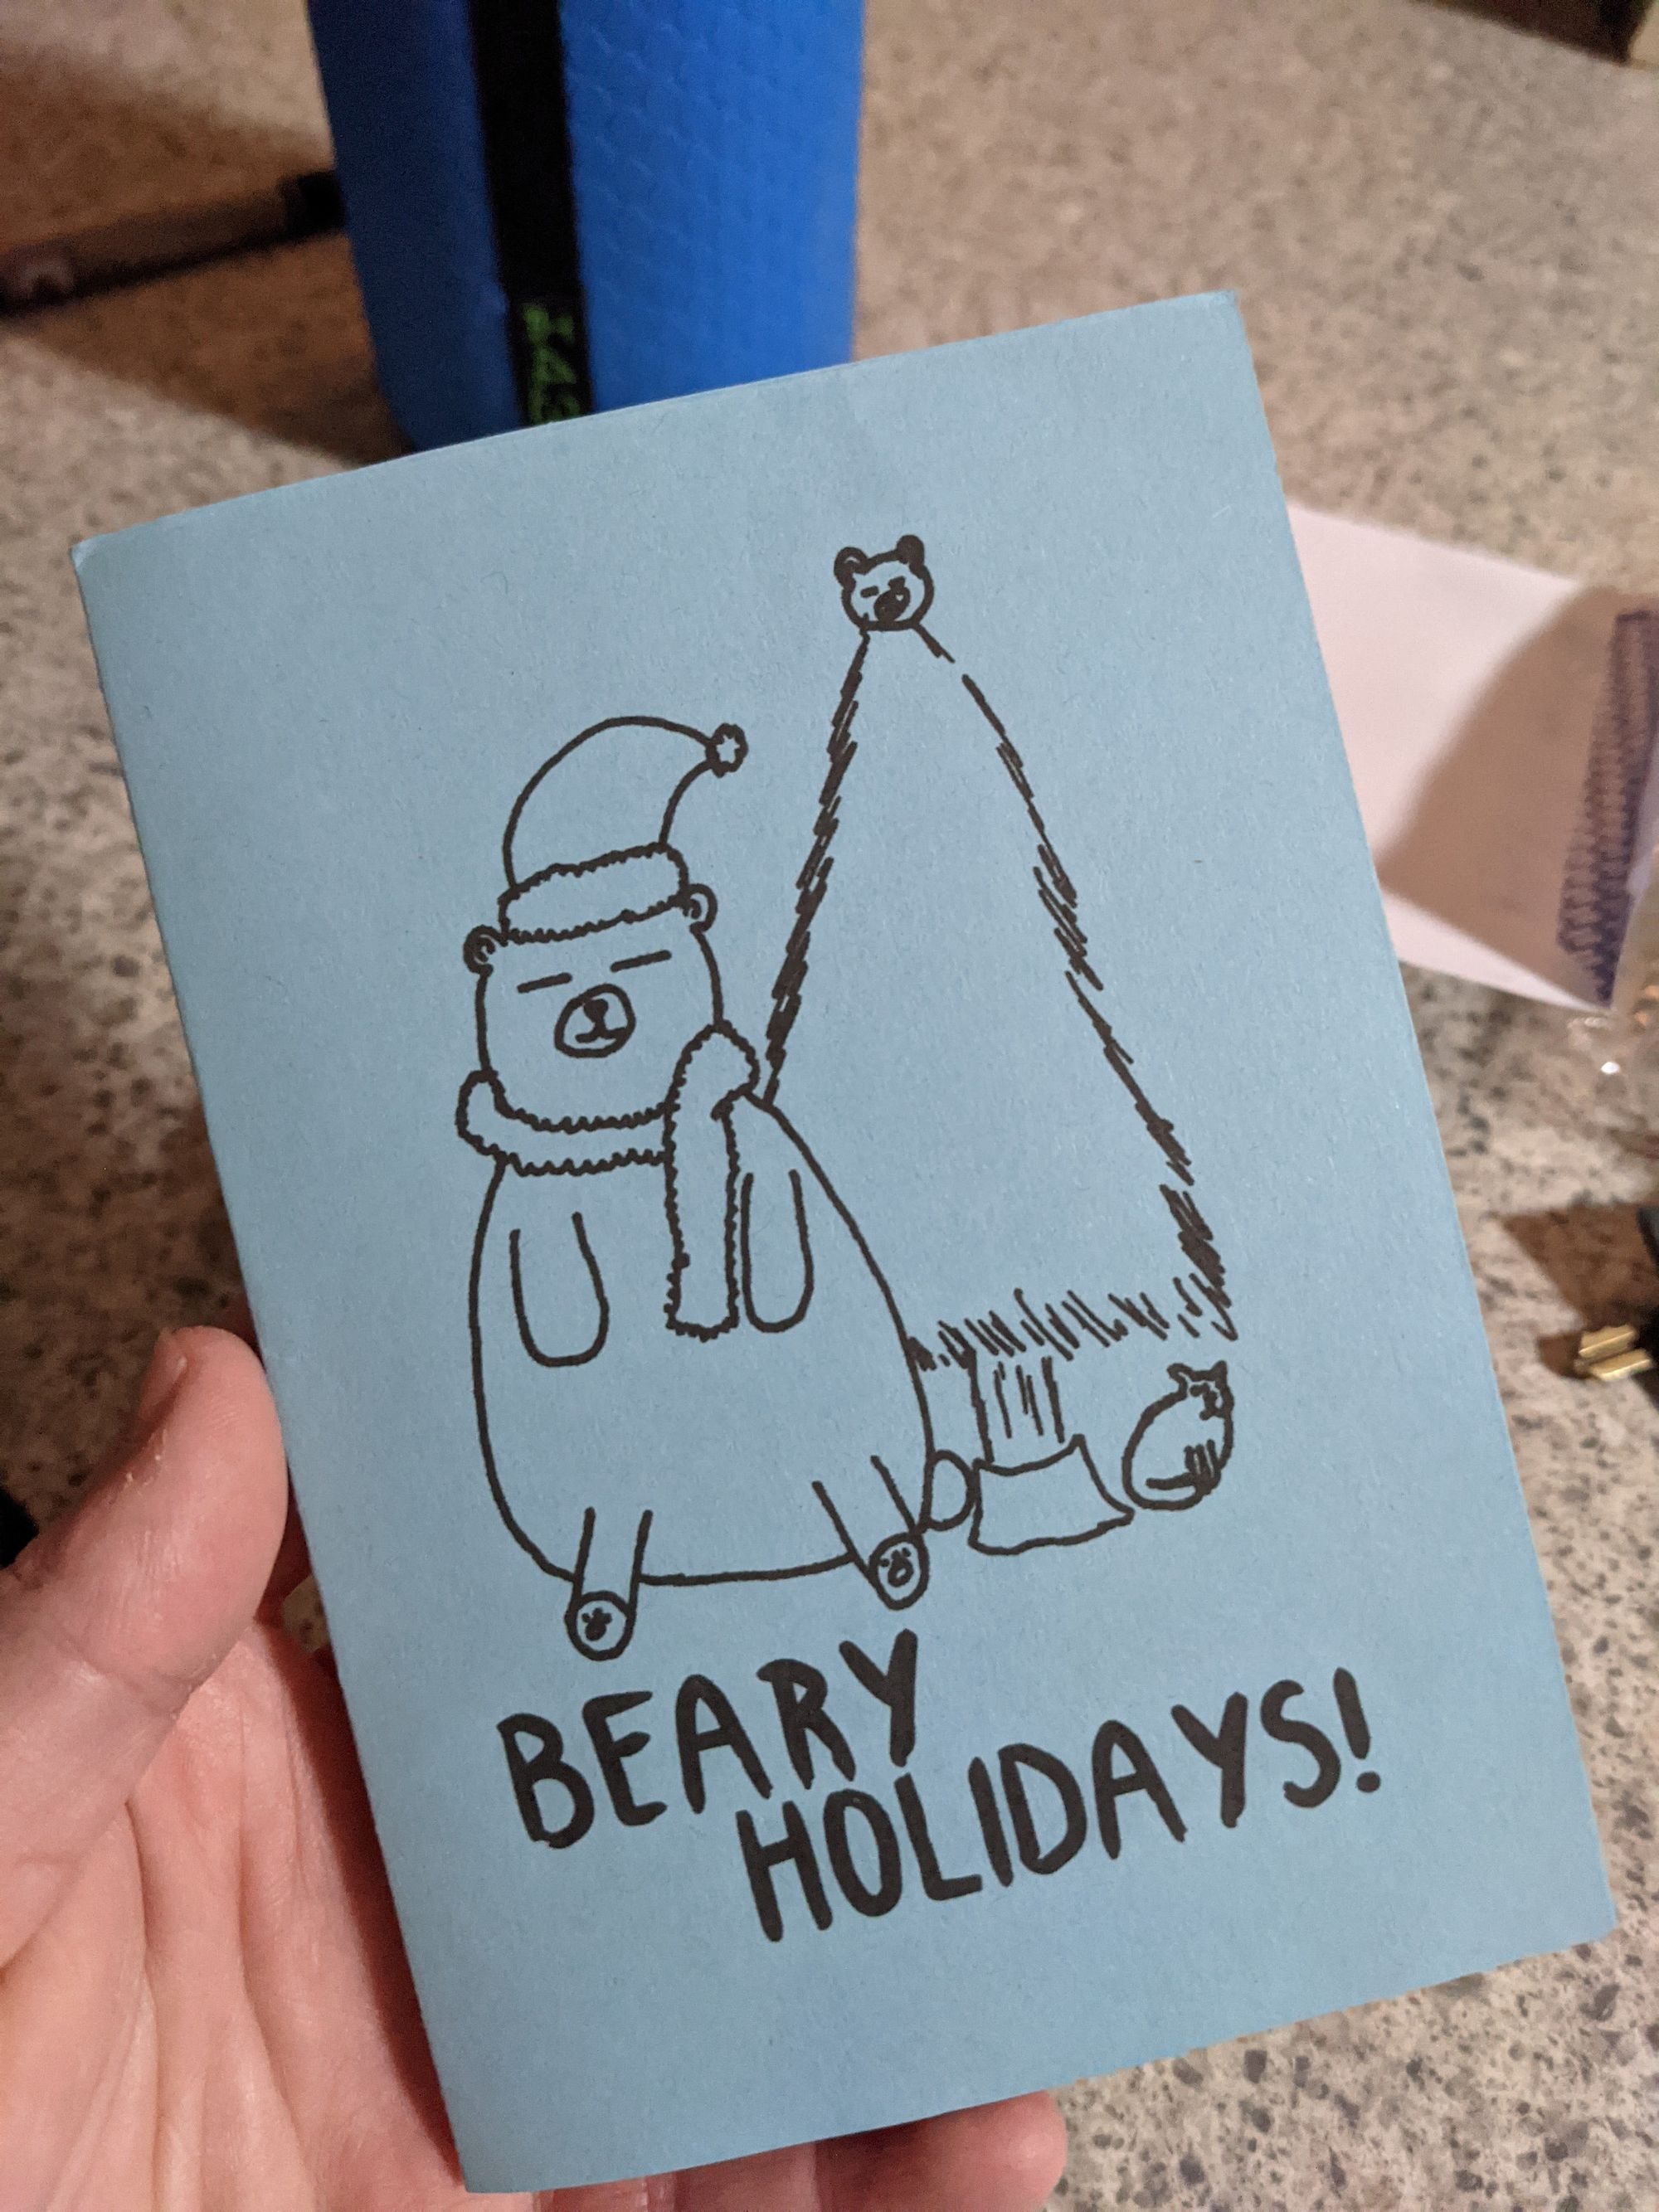 My hand holding a blue christmas card, is says Beary Holidays! with a drawn bear next to a christmas tree.